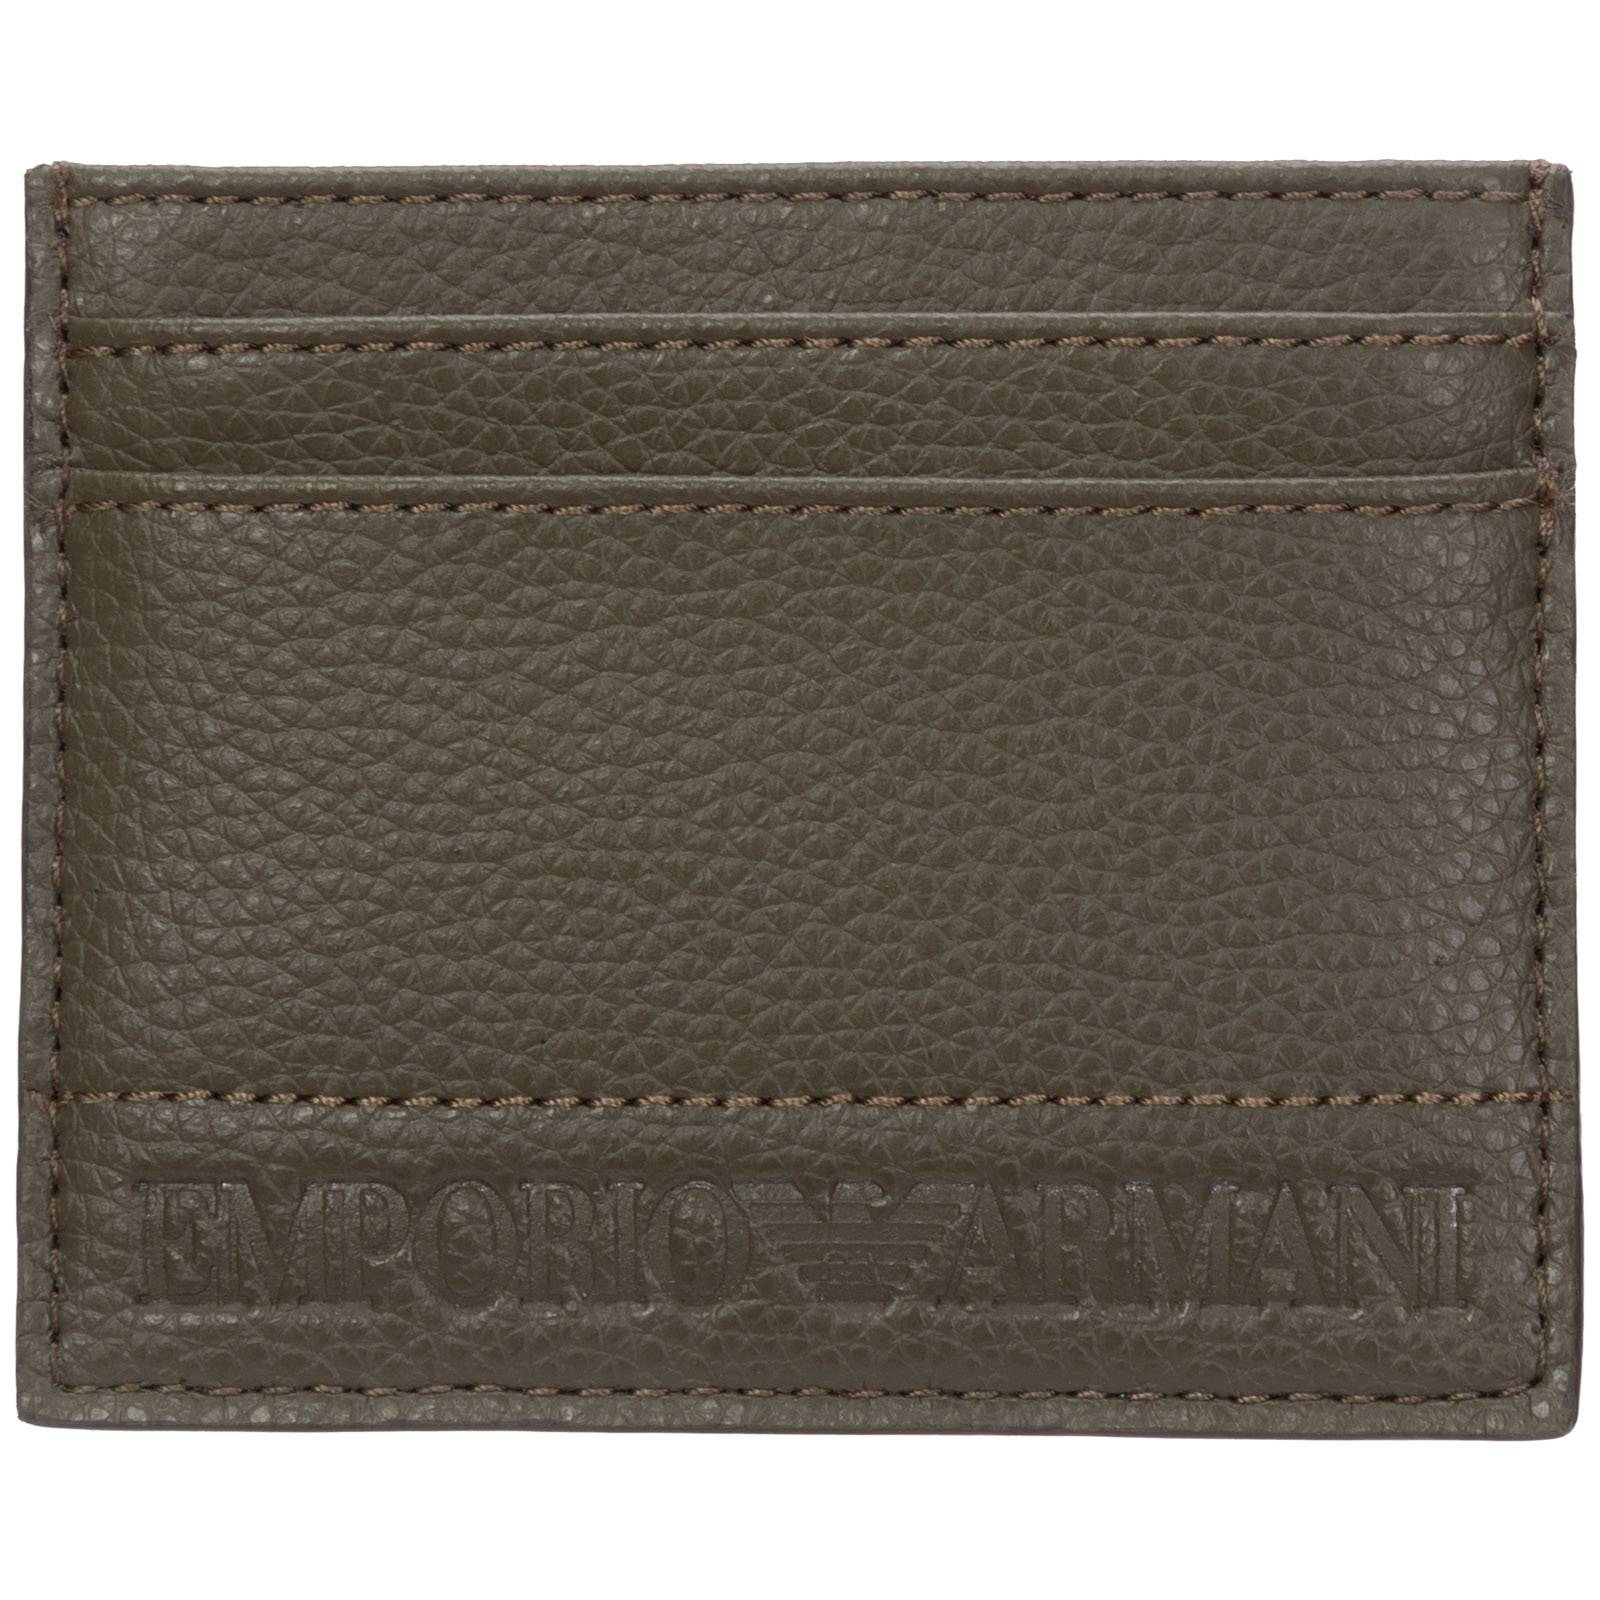 Emporio Armani Men's genuine leather credit card case holder wallet  - Green